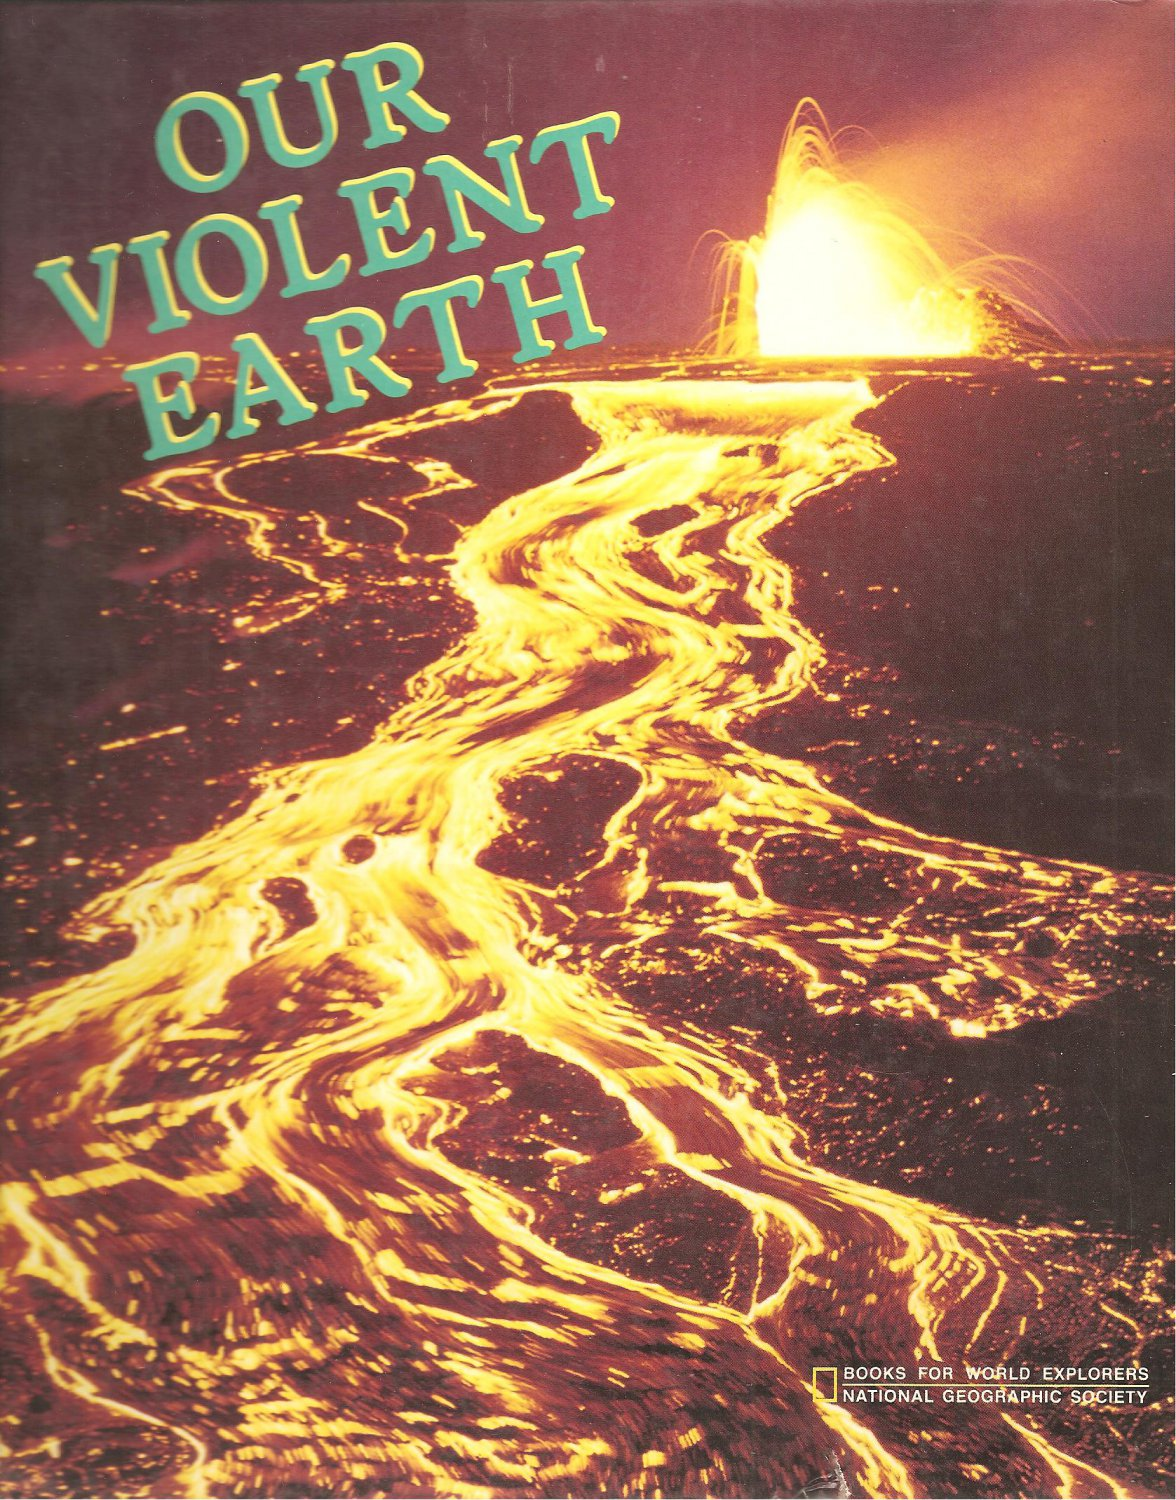 Our Violent Earth